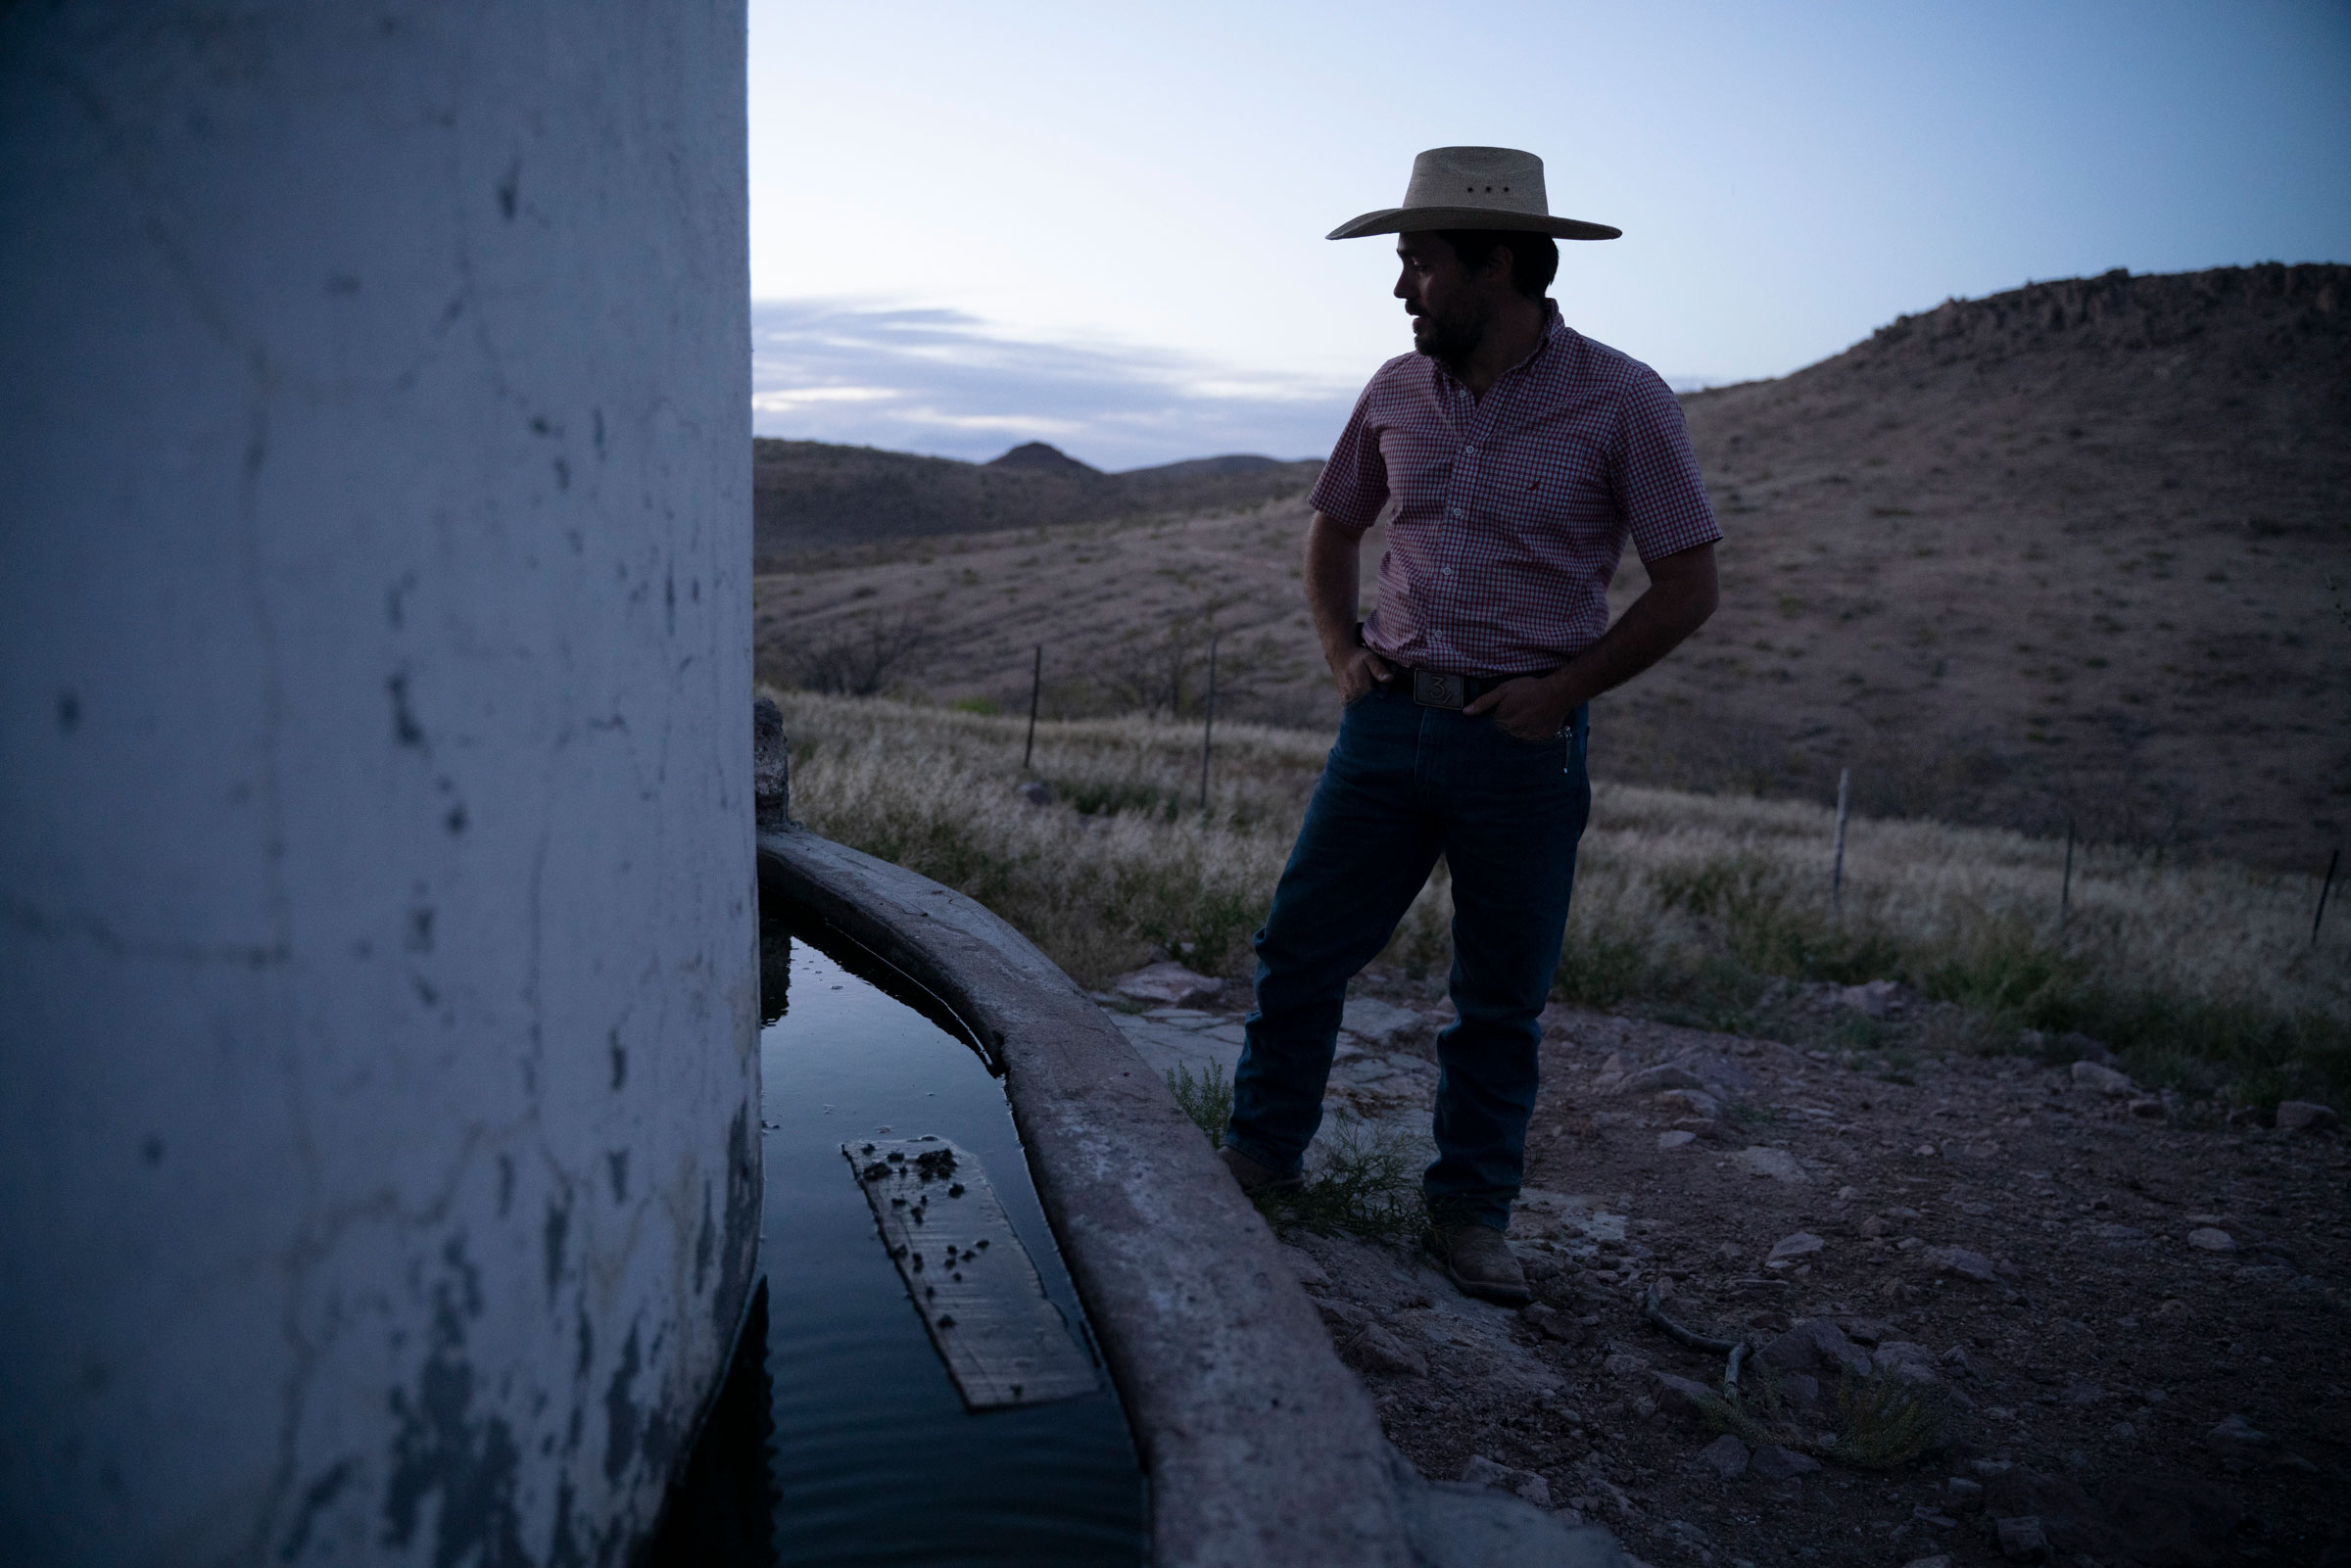 Enrique Perez Carrillo, 31, checks the water level of a water tank on his ranch. Paul Ratje